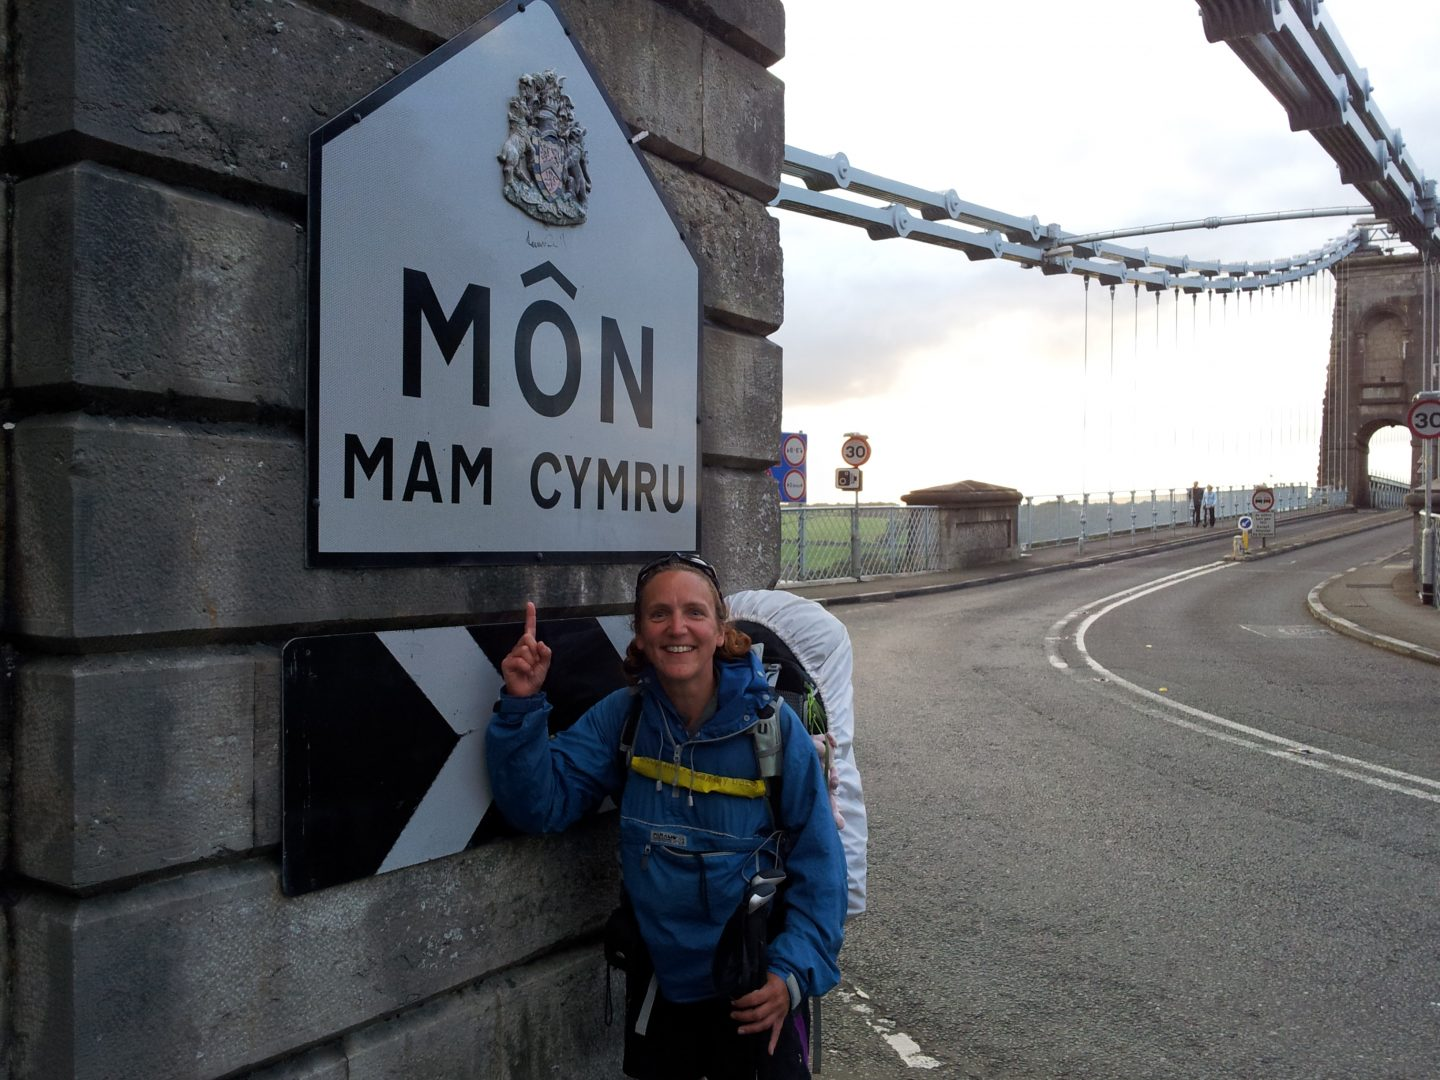 A woman standing at the start of a bridge, pointing upwards at a Mon Mam Cymru sign.